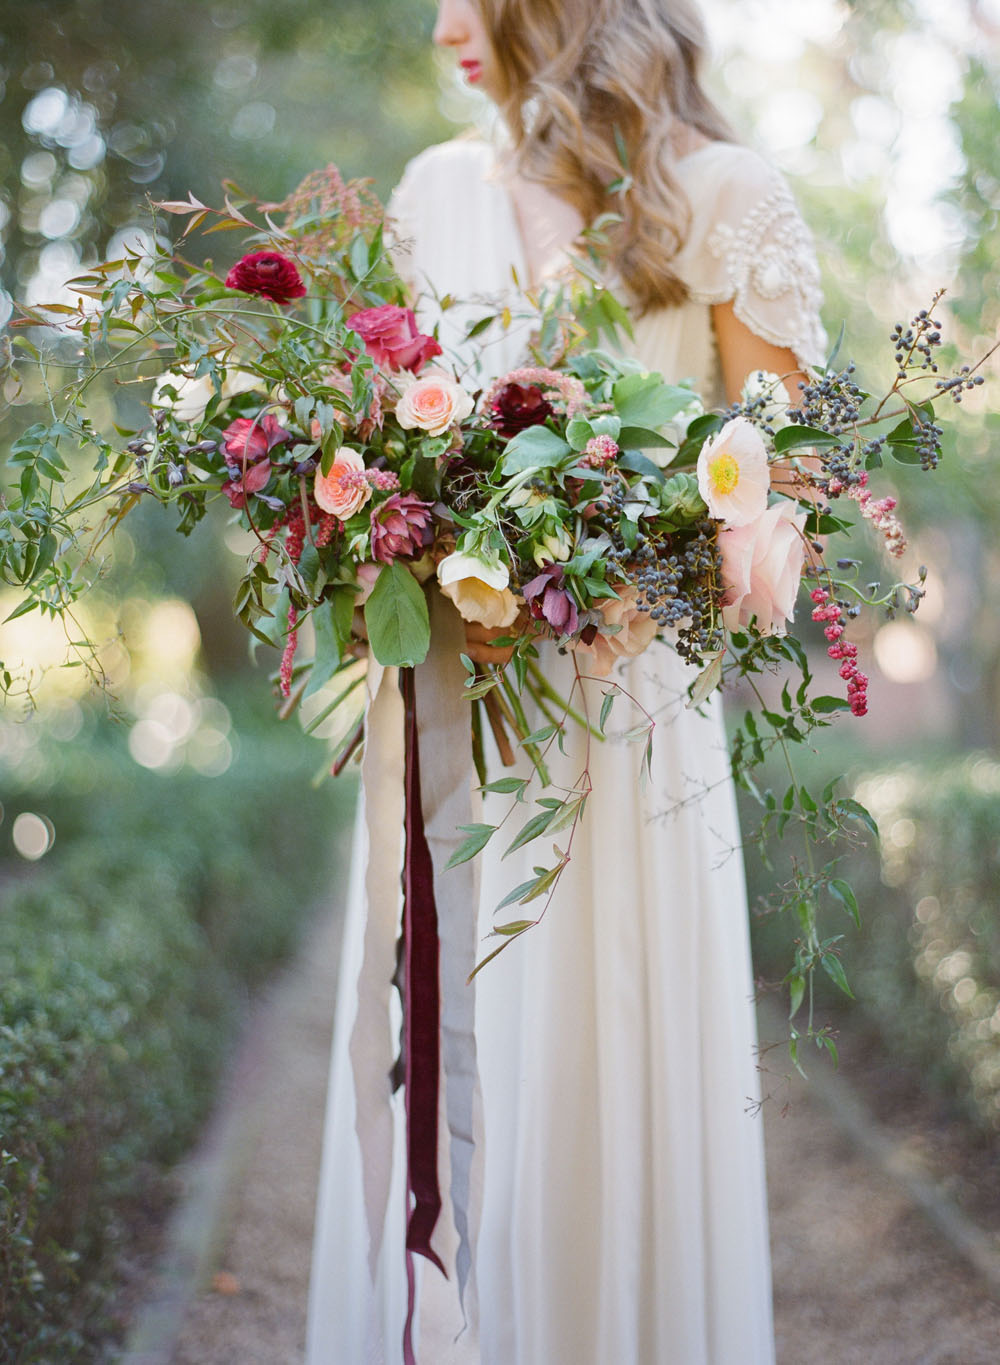 kellyoshiro.com | Photo: Megan Sorel | Wedding Bouquet & Ceremony Inspiration by Amy Osaba